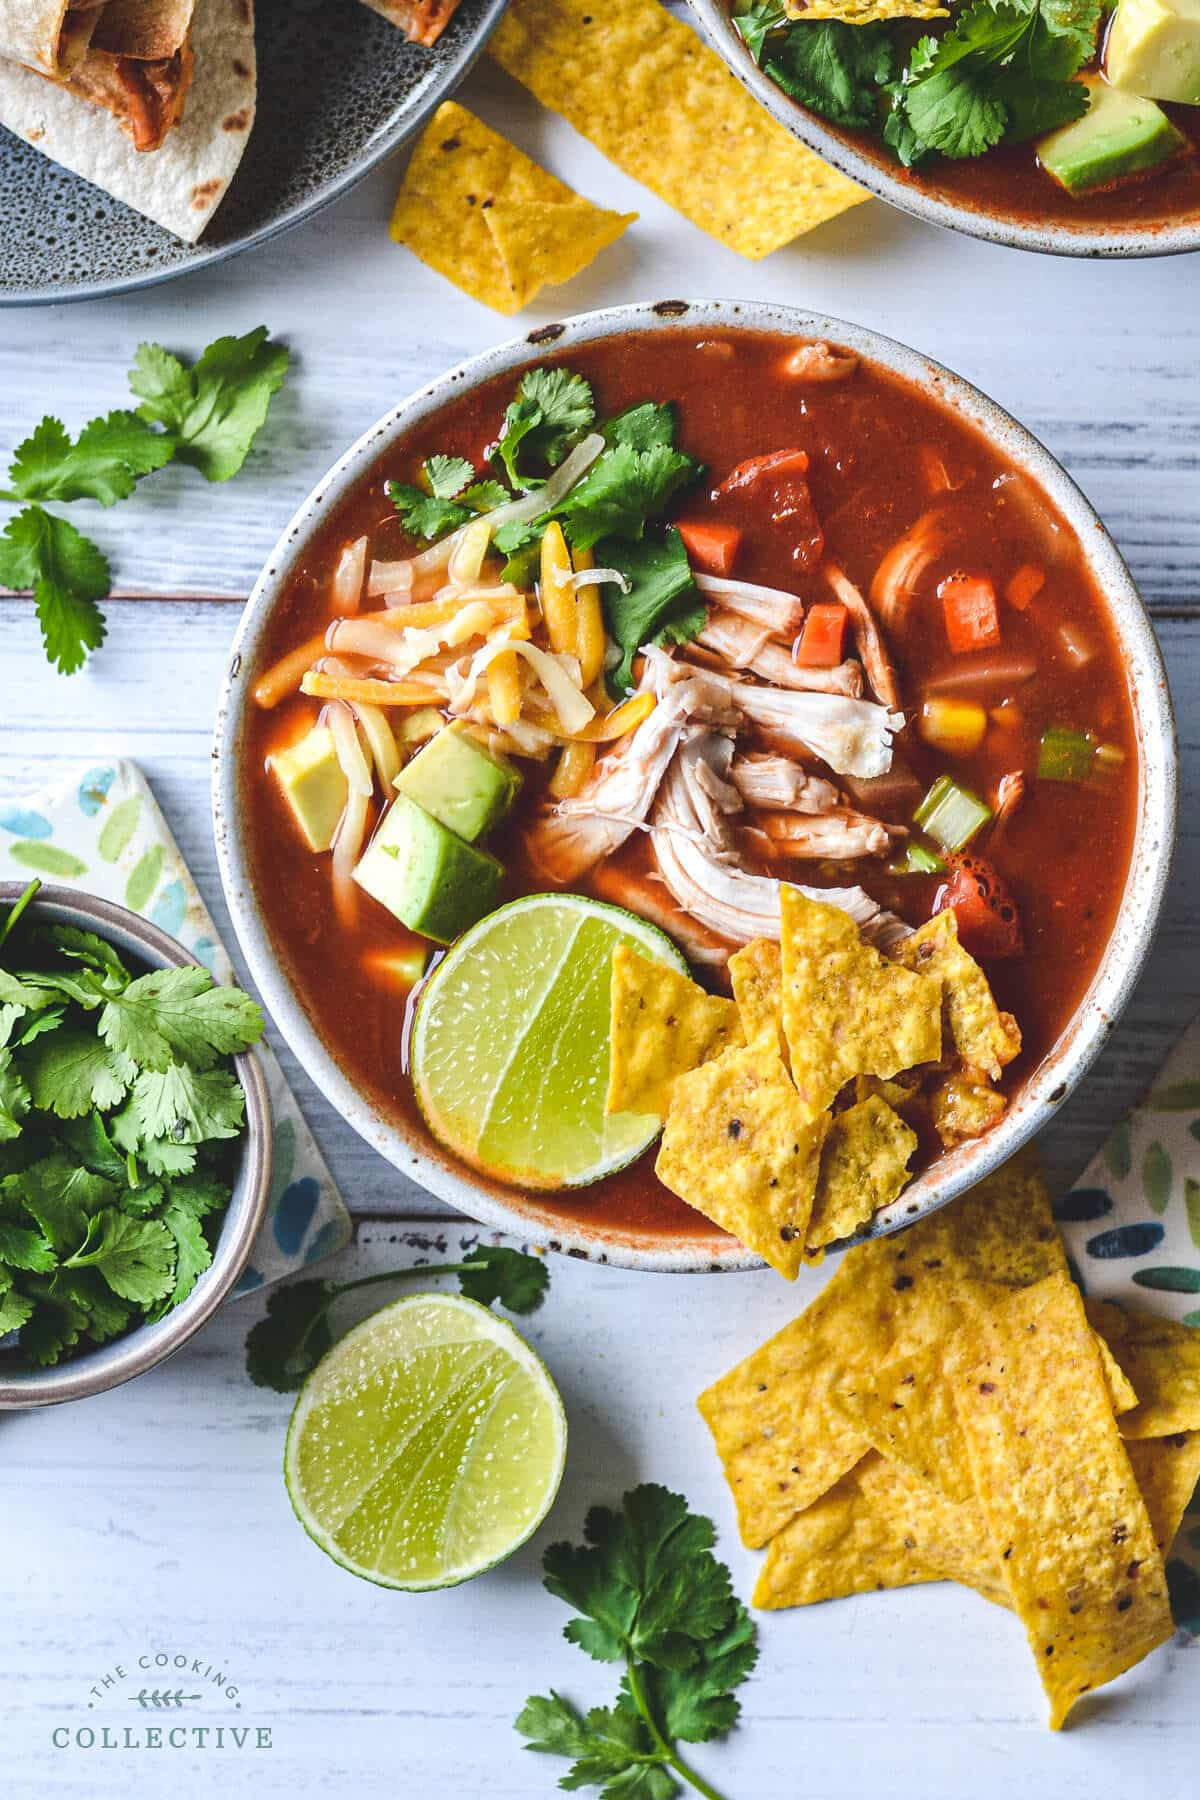 top view of a bowl of soup laid out on a table with tortilla chips, lime and coriander